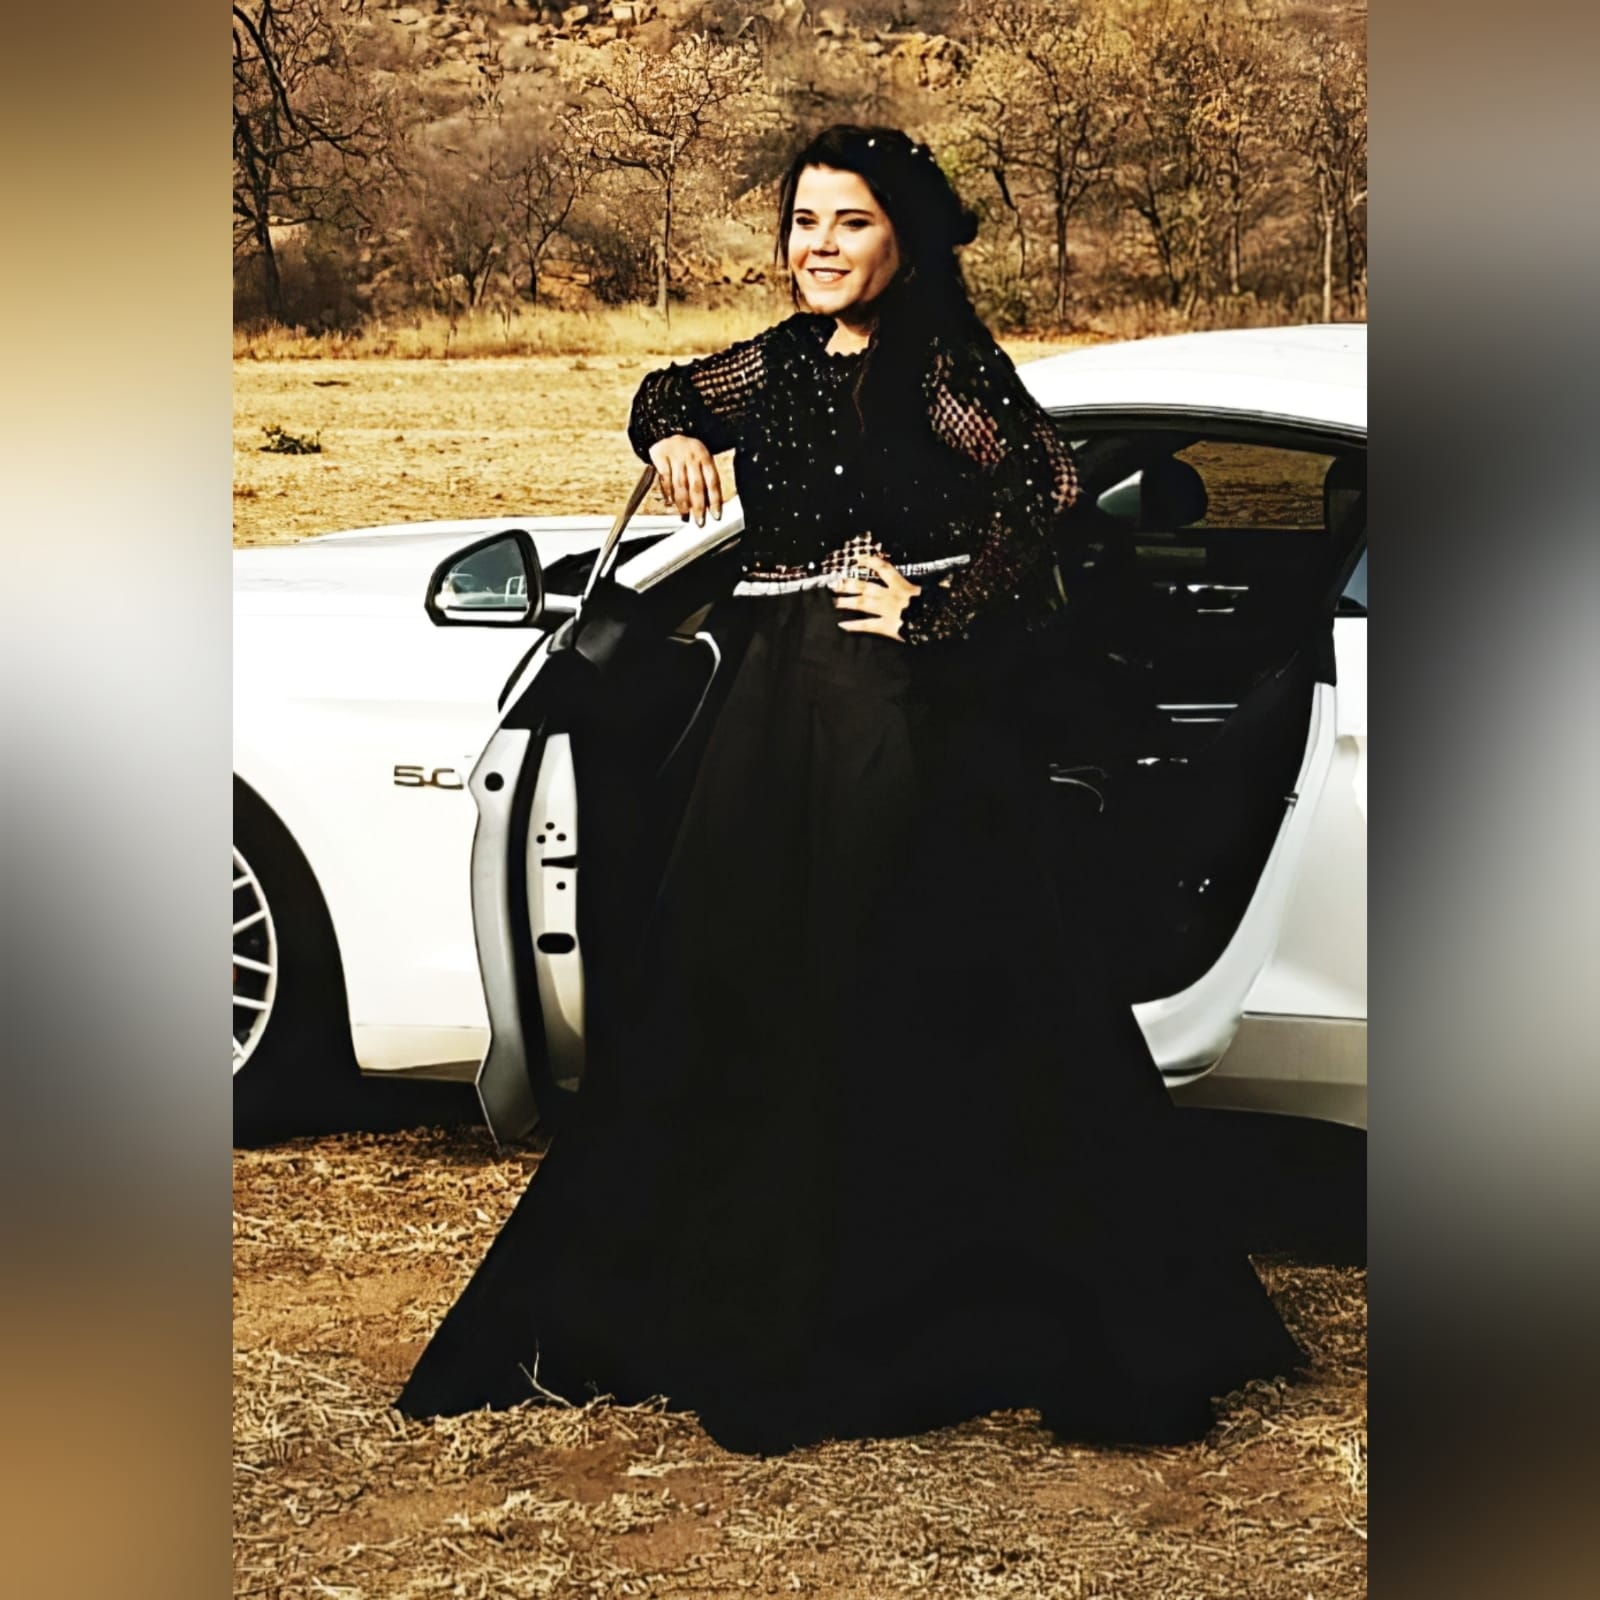 Black matric dress with a lace bodice 1 an elegant design created for a prom night. Black prom dress with a lace bodice with a slight sheer look detailed with silver beads and waist belt. Round neckline and long sleeves bottom flowy in a bridal organza